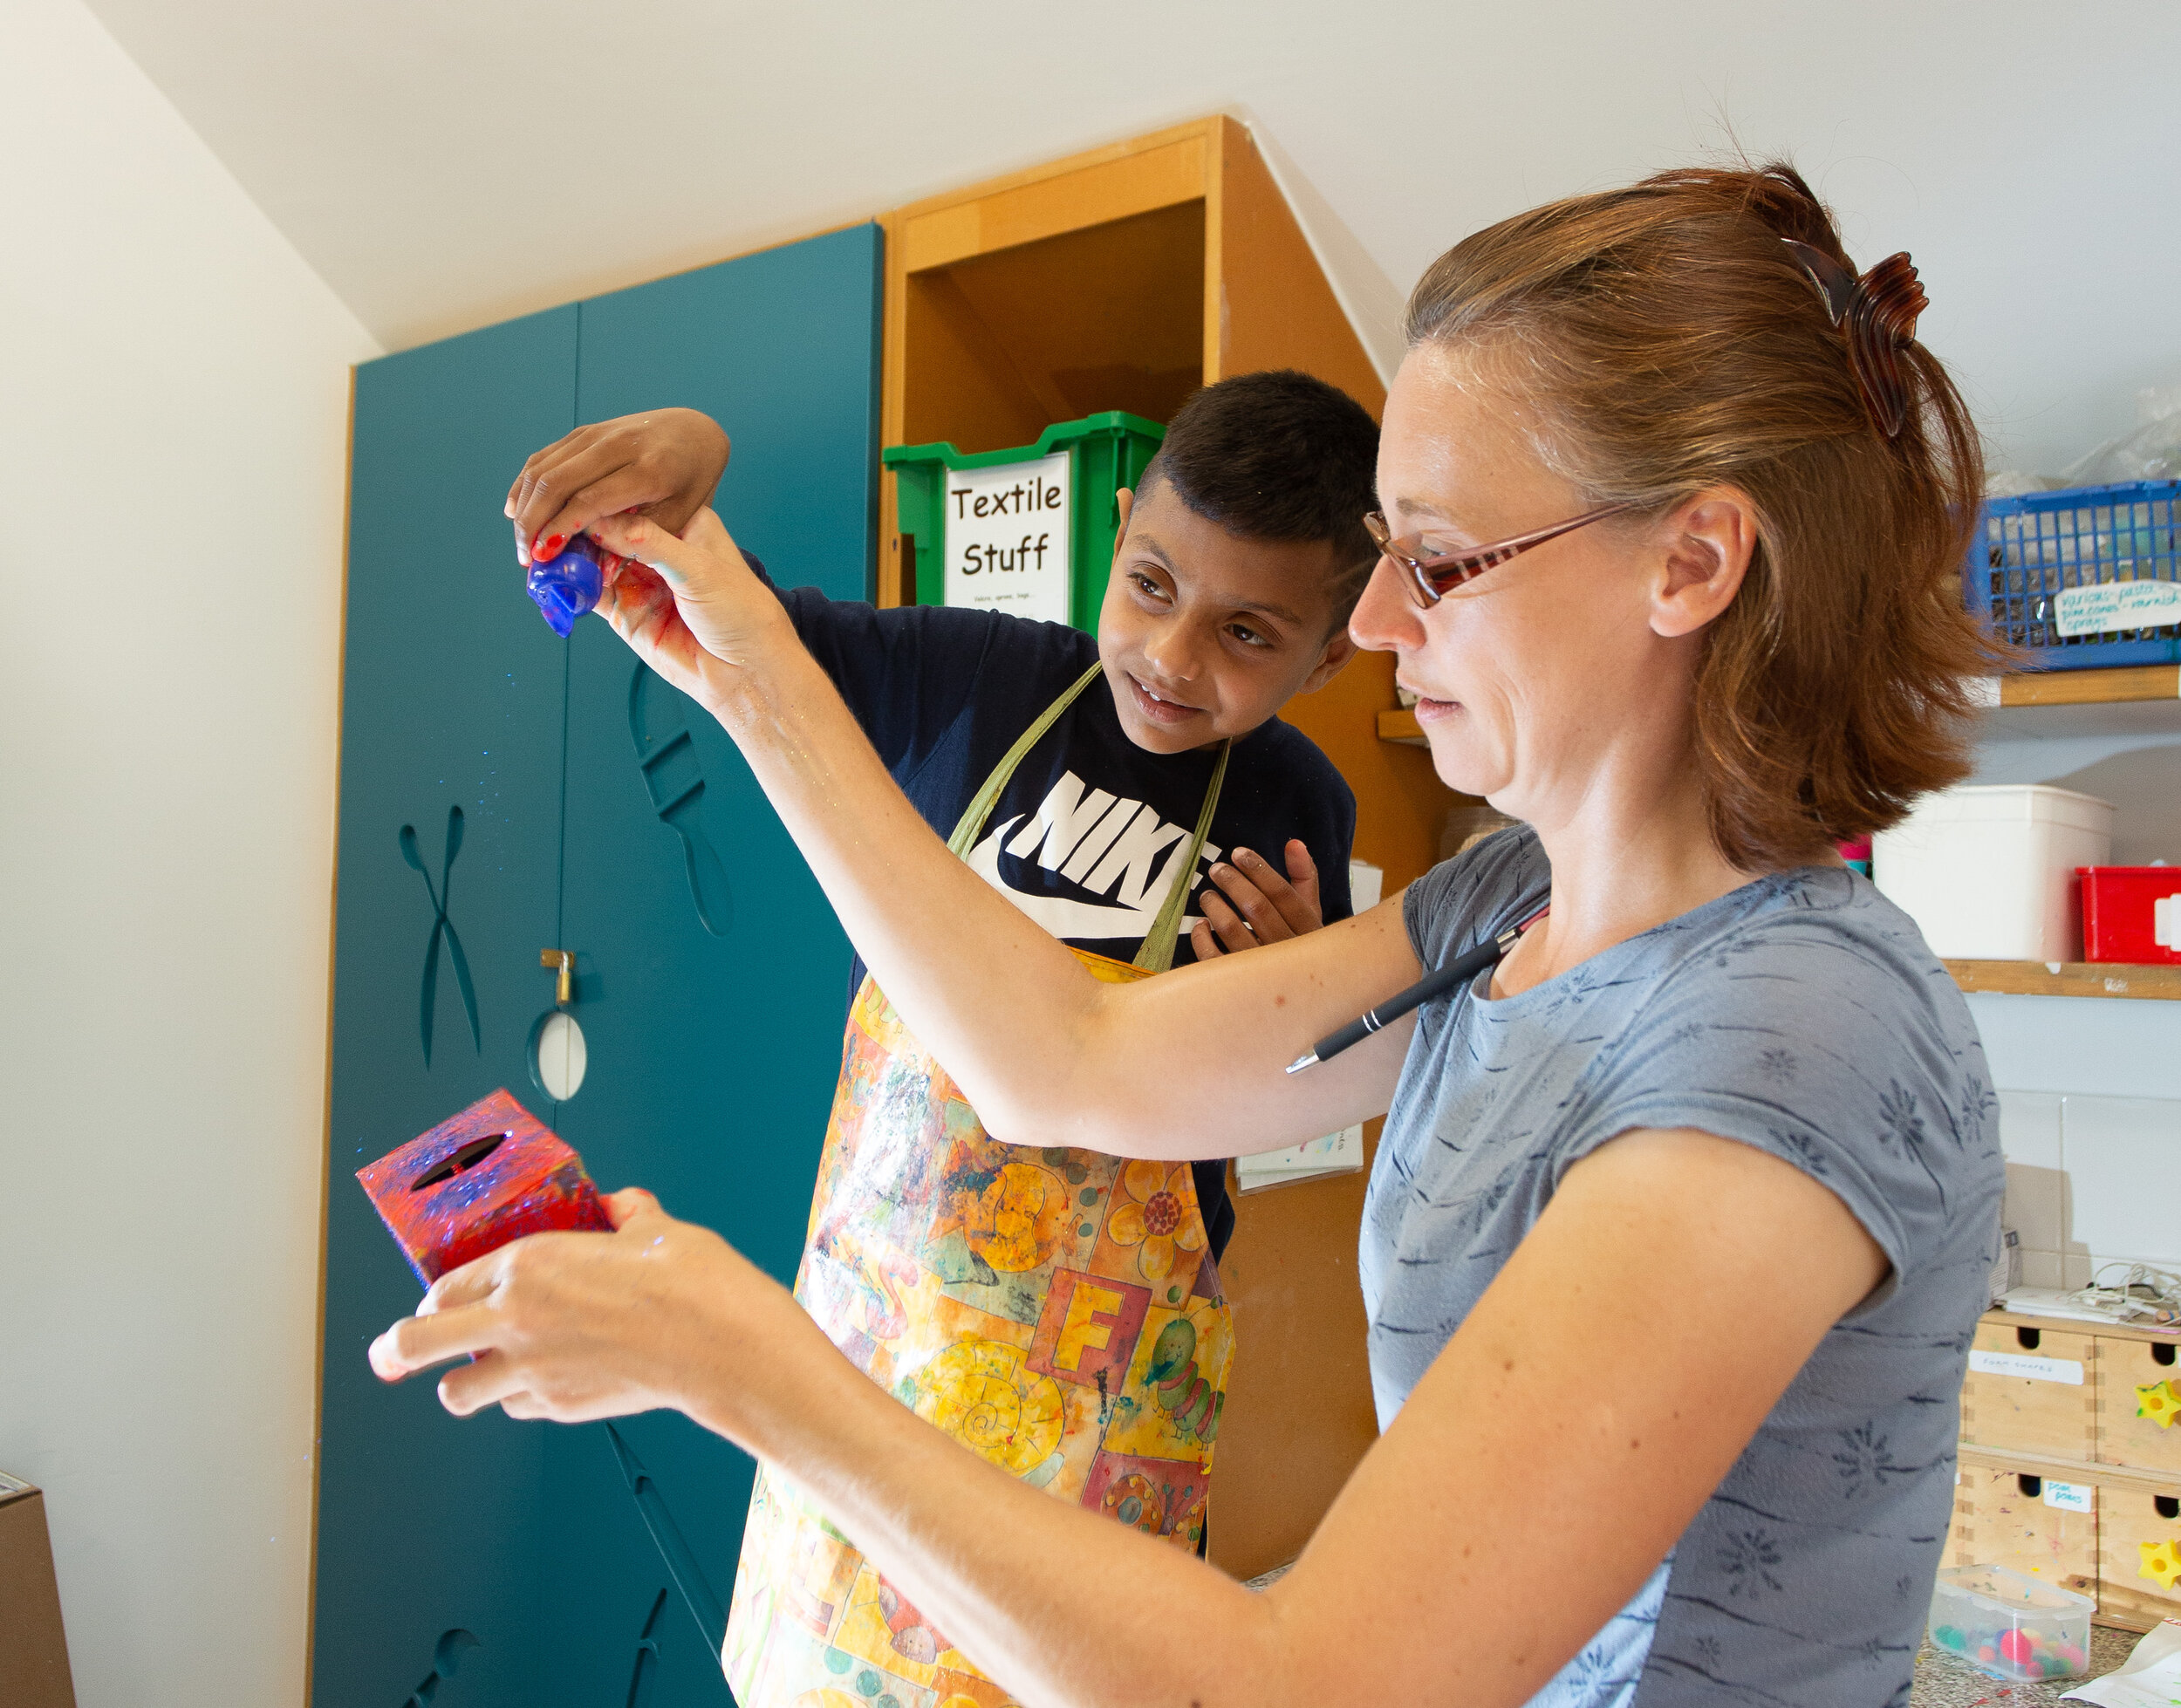 Every year Martin House provides over 3,500 hours of art and music therapy to children with life-limiting conditions.